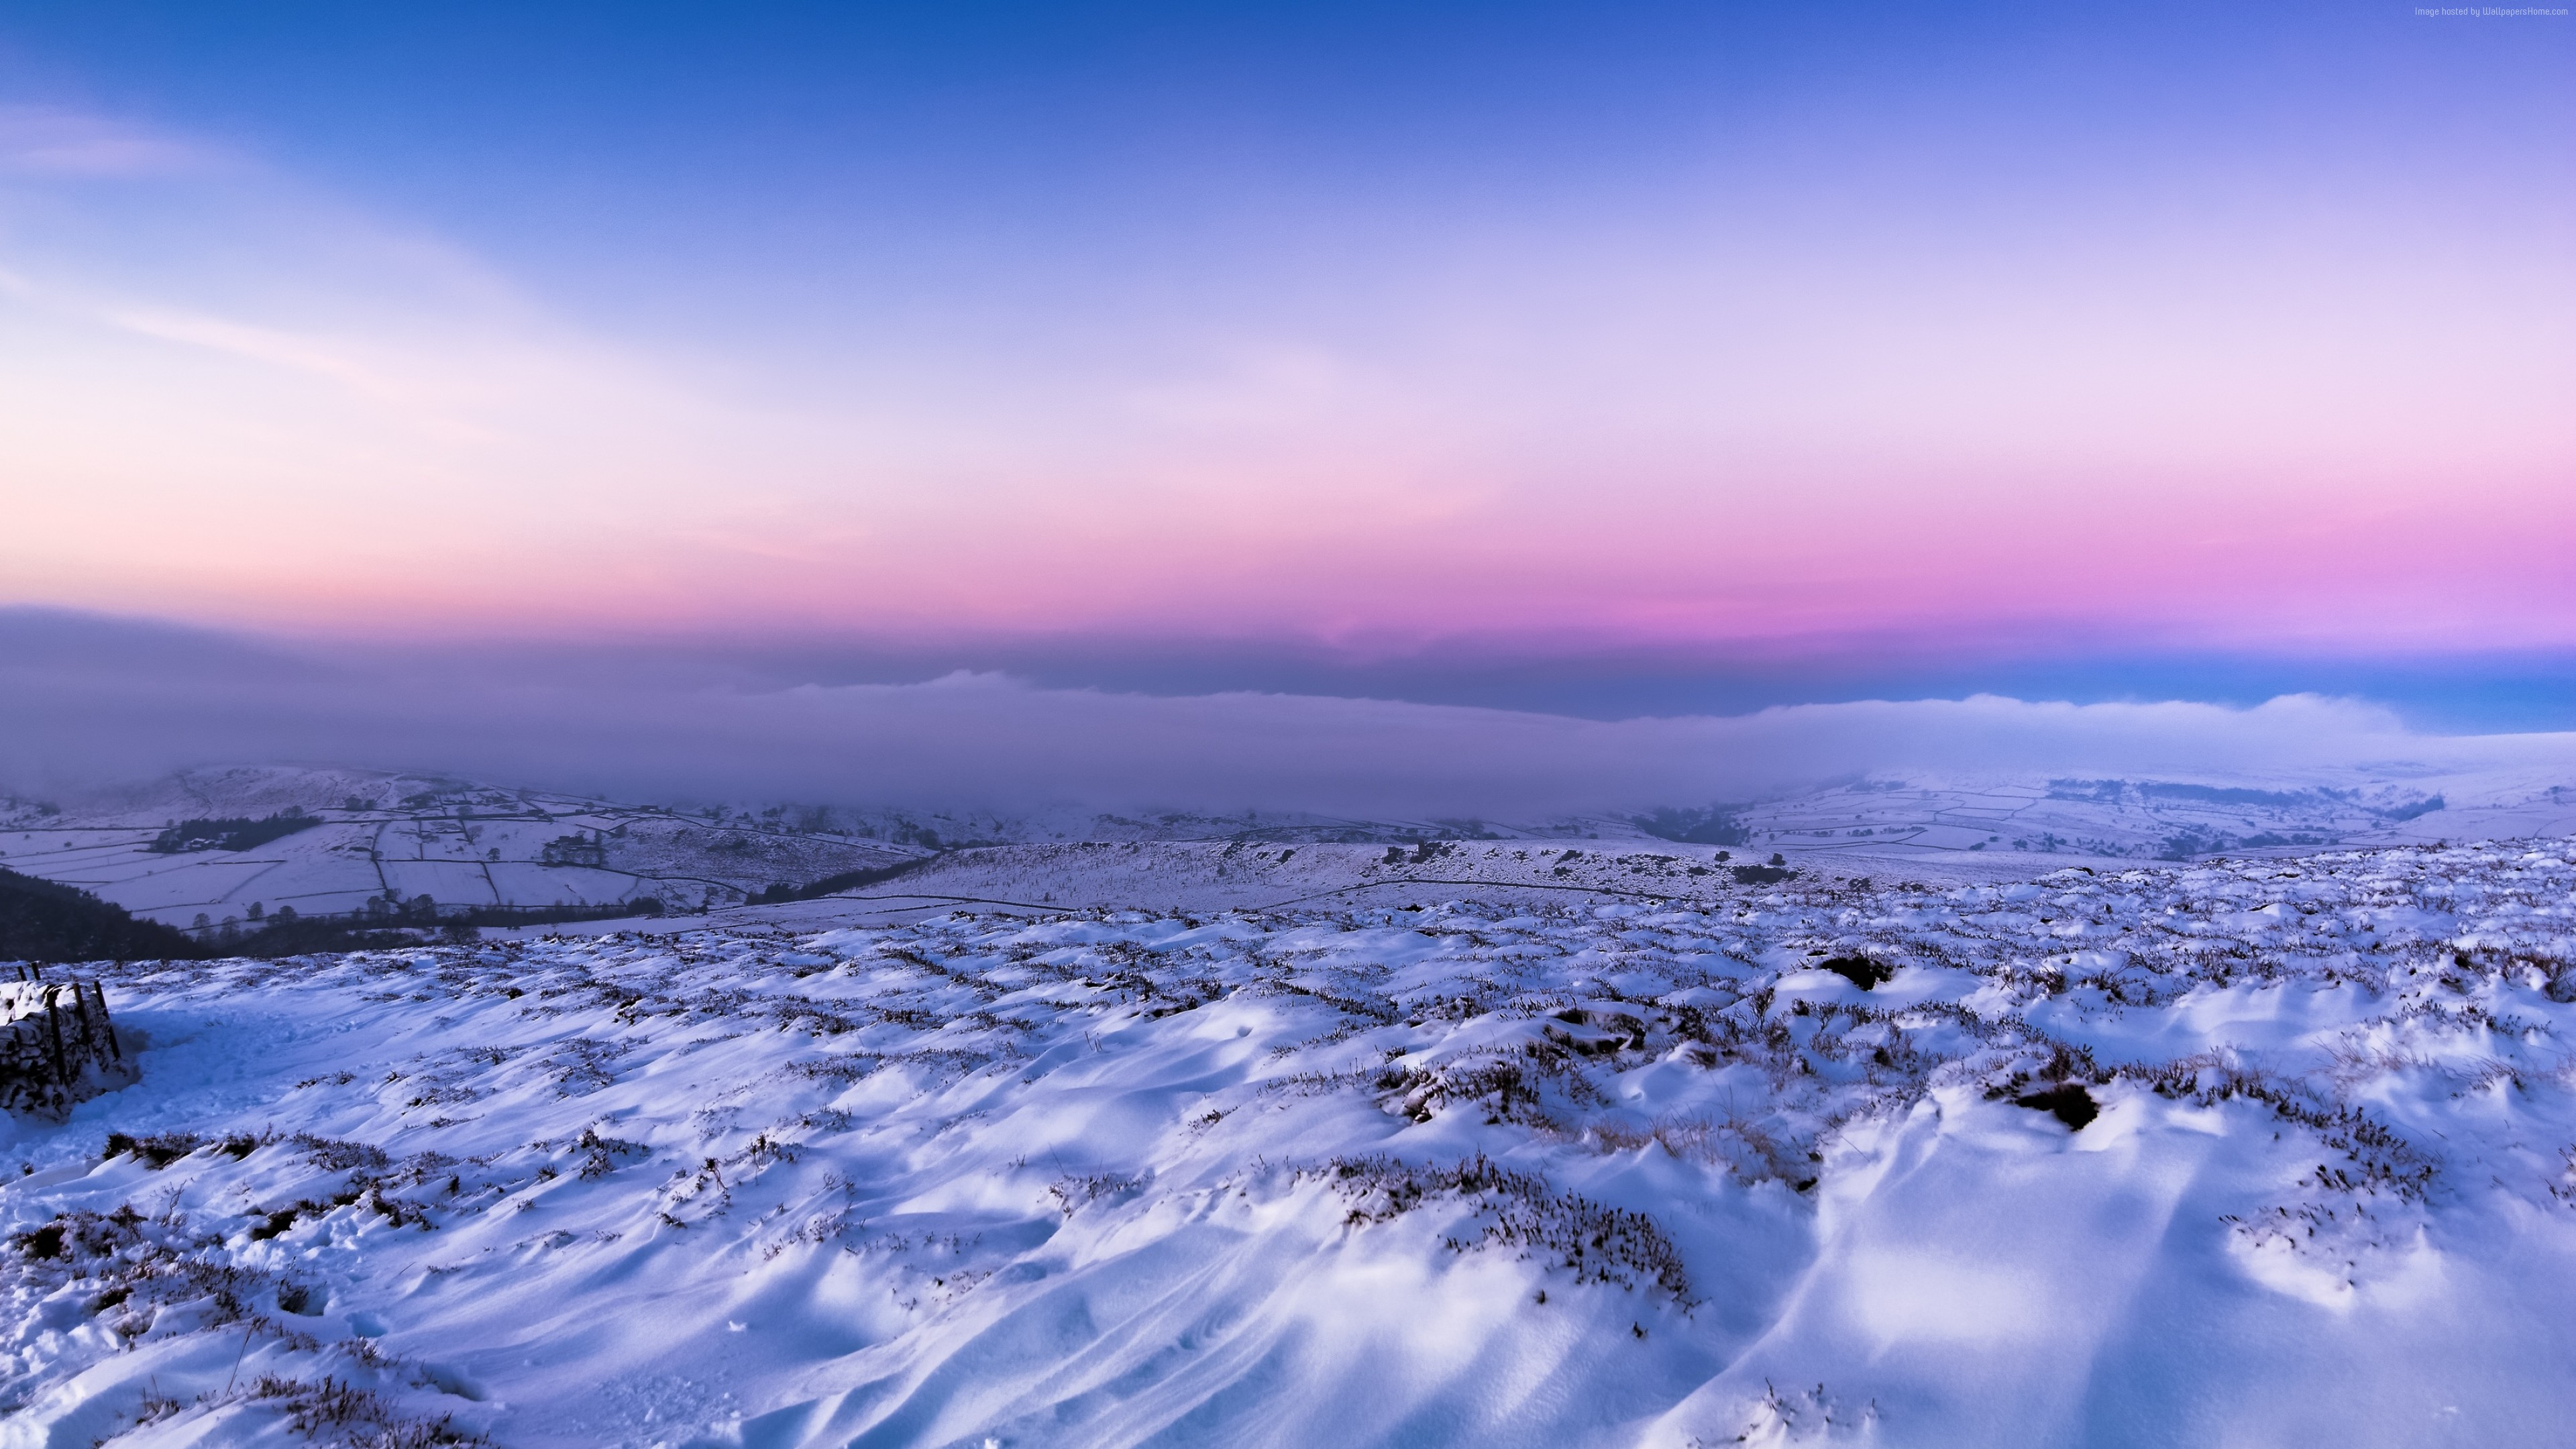 Stock Images field, snow, winter, 4k, Stock Images